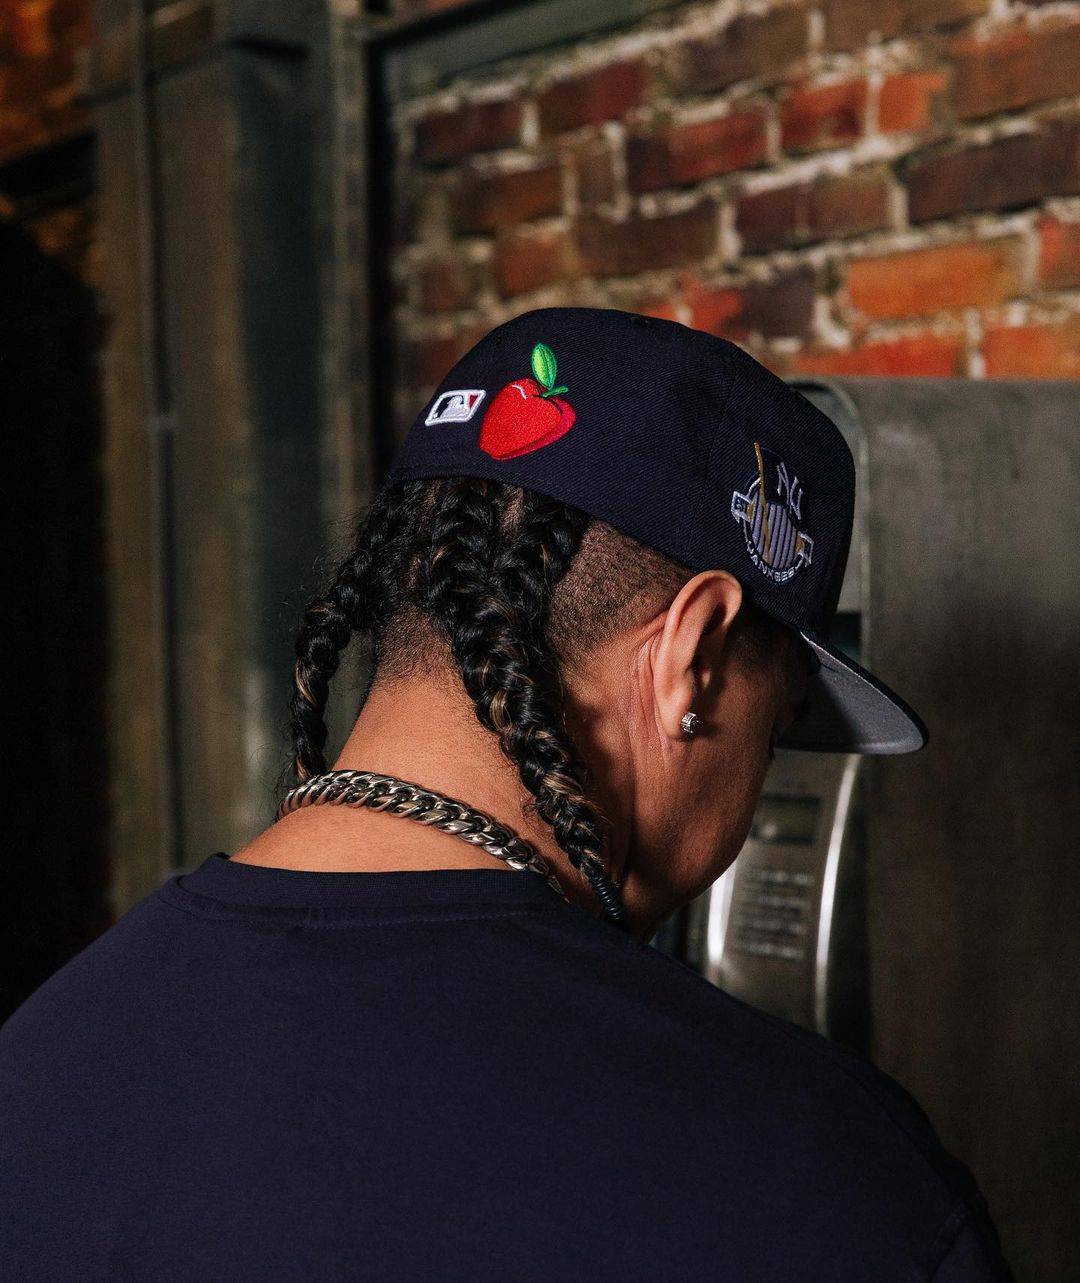 Limited New York Yankees Fitted Caps